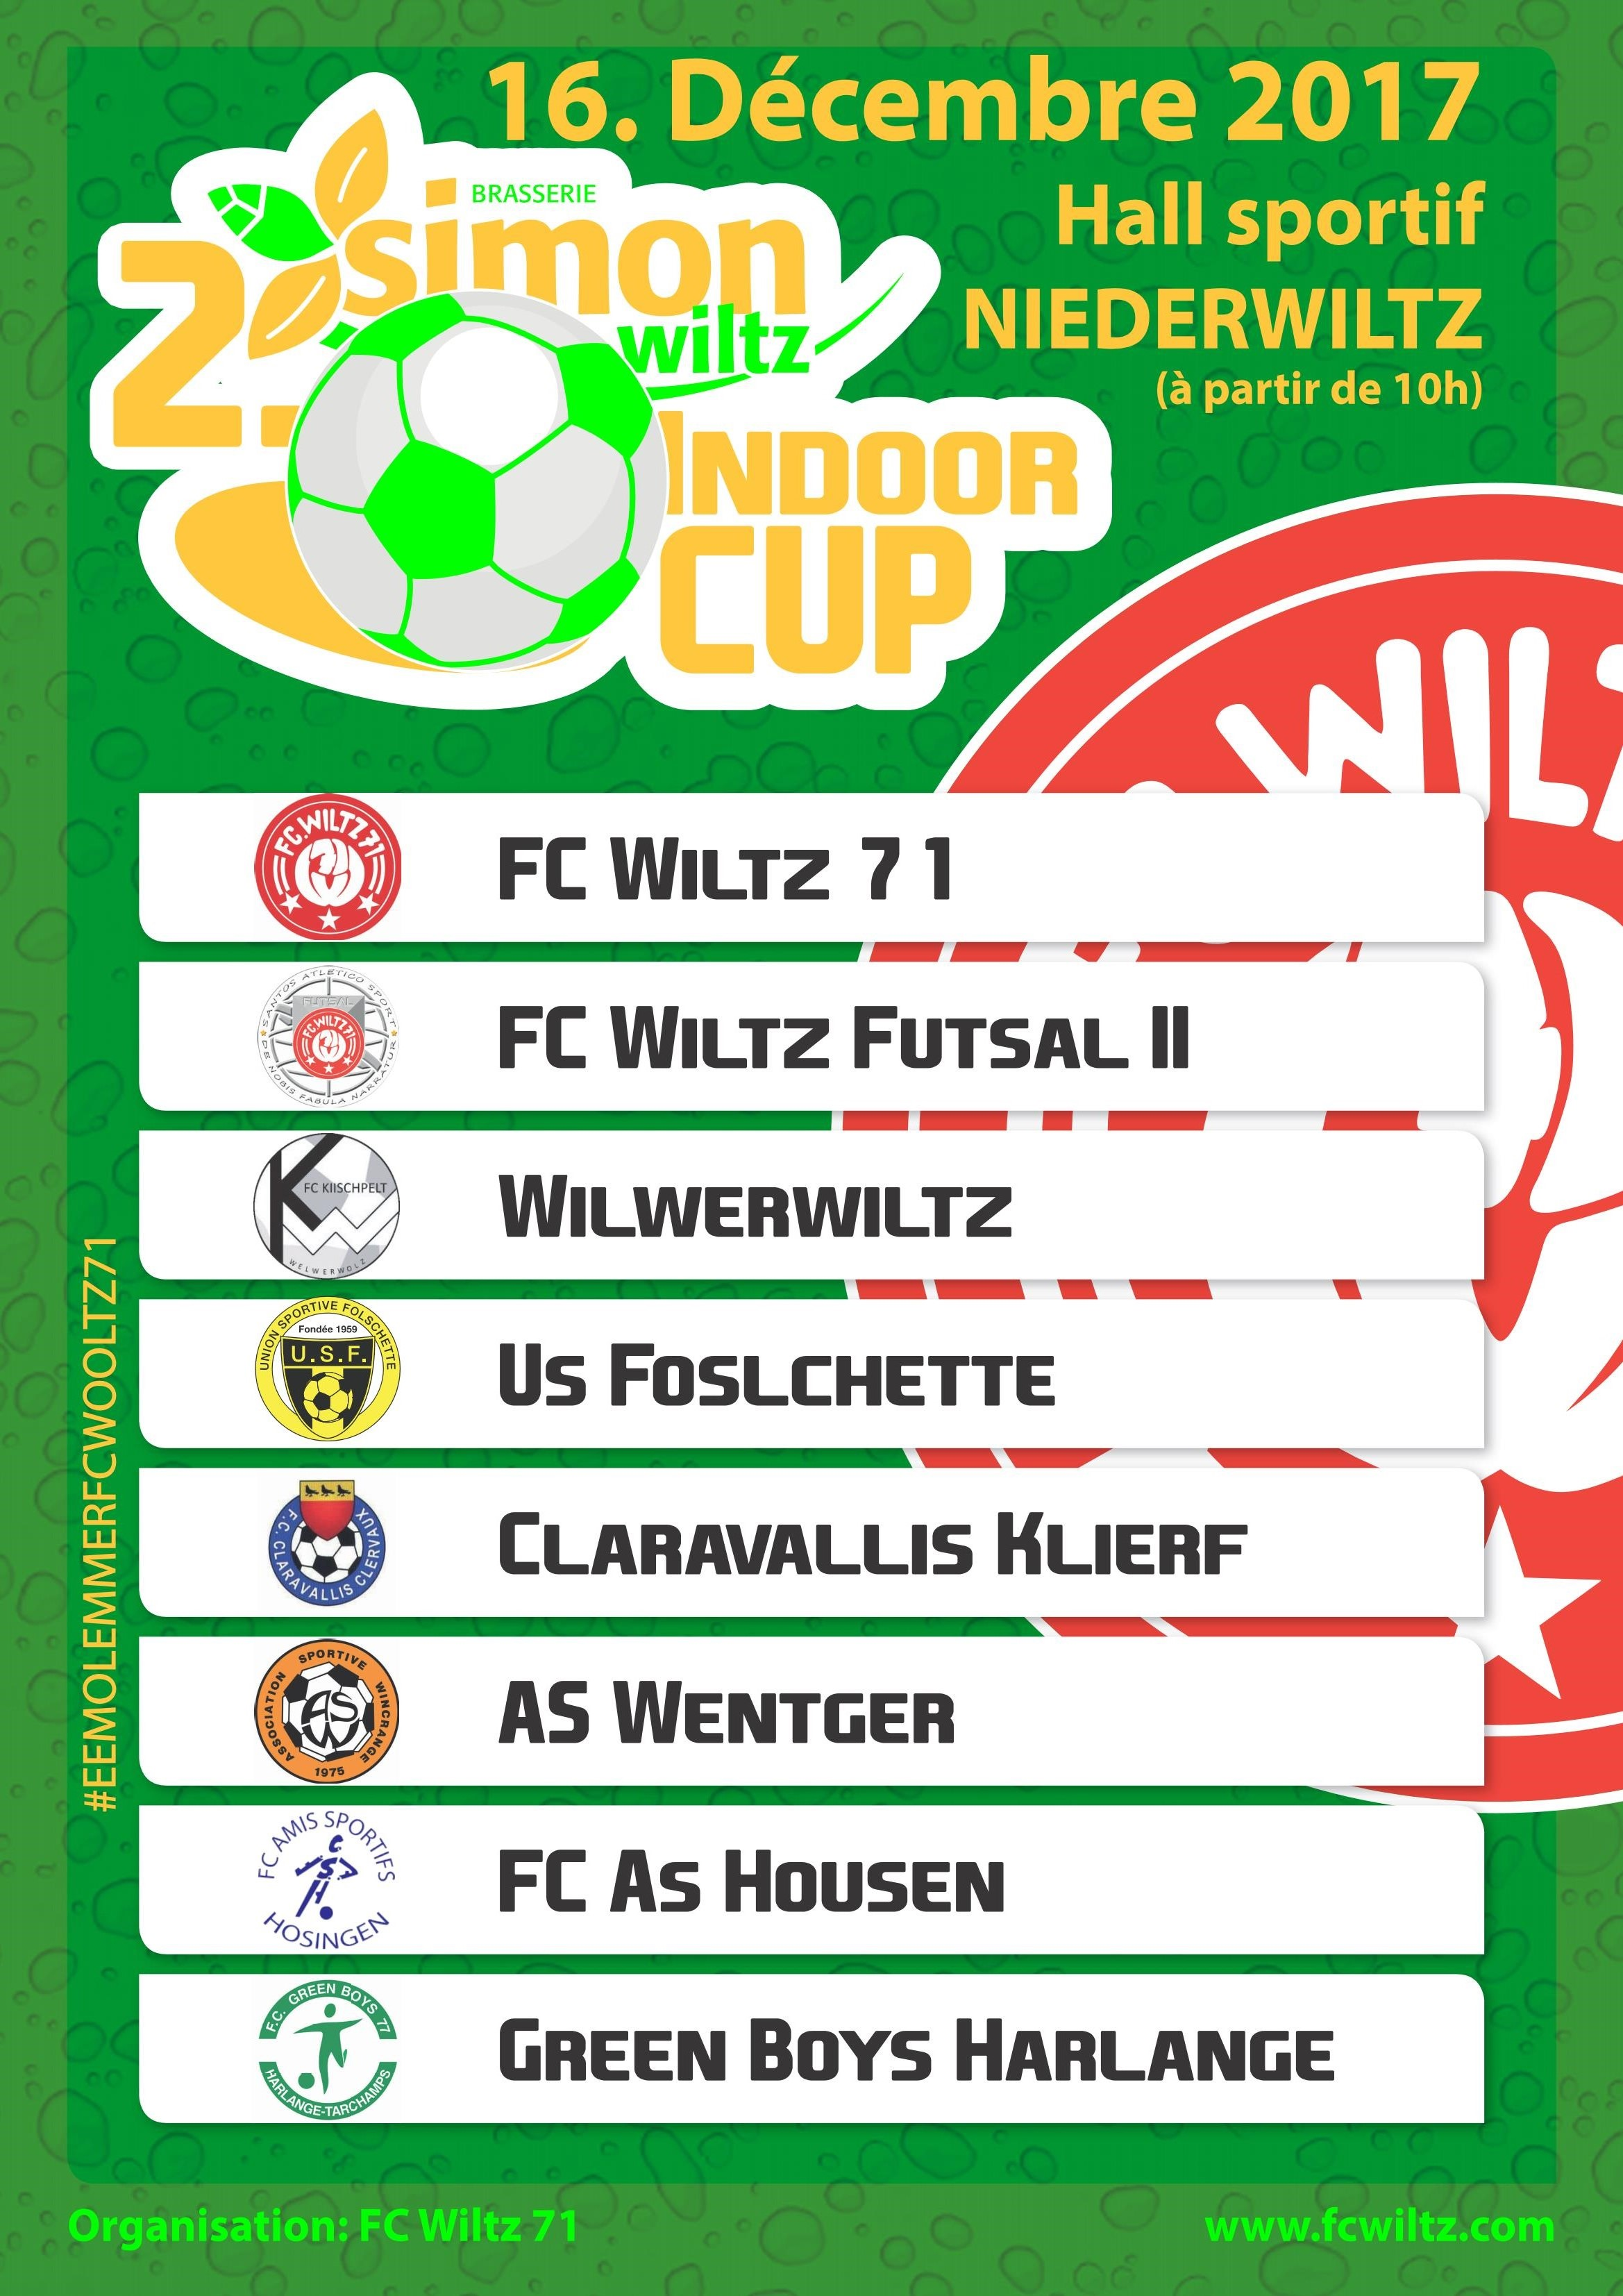 2. BRASSERIE SIMON INDOOR CUP